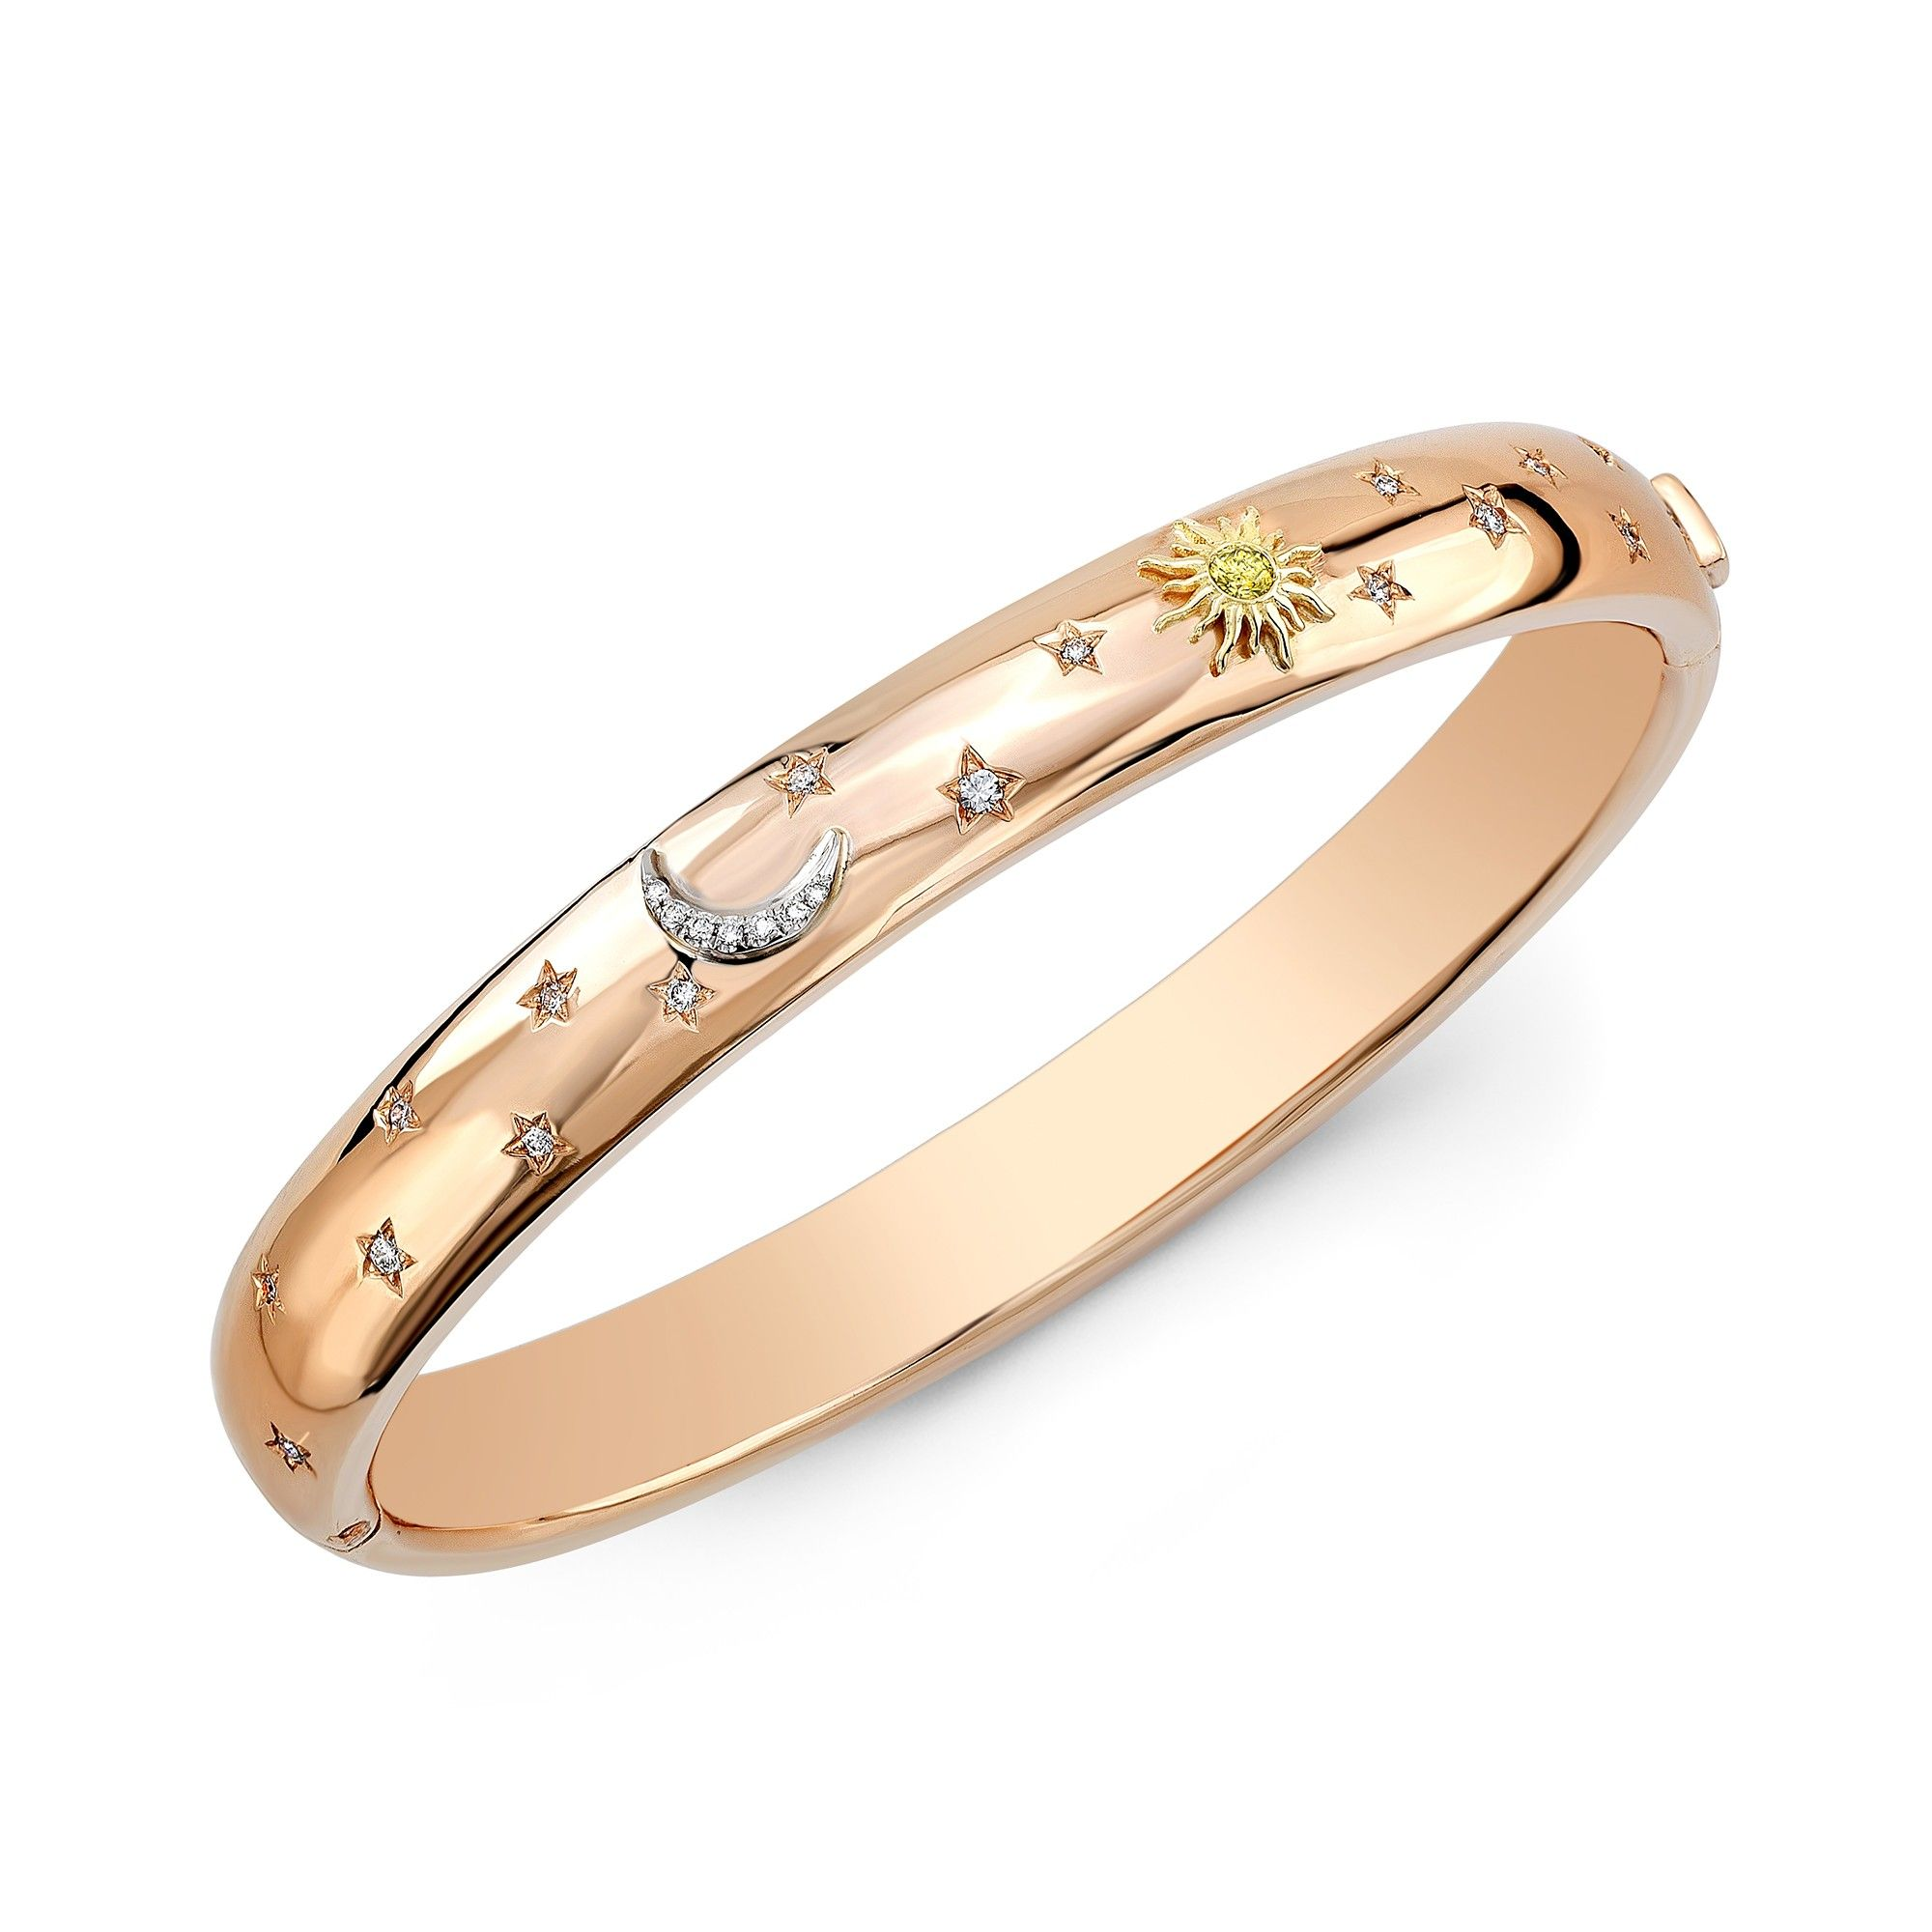 the bangle diamond gold cuffs rose bracelet best cartier bangles bracelets watches love news michael fashion jewellery kors uk of